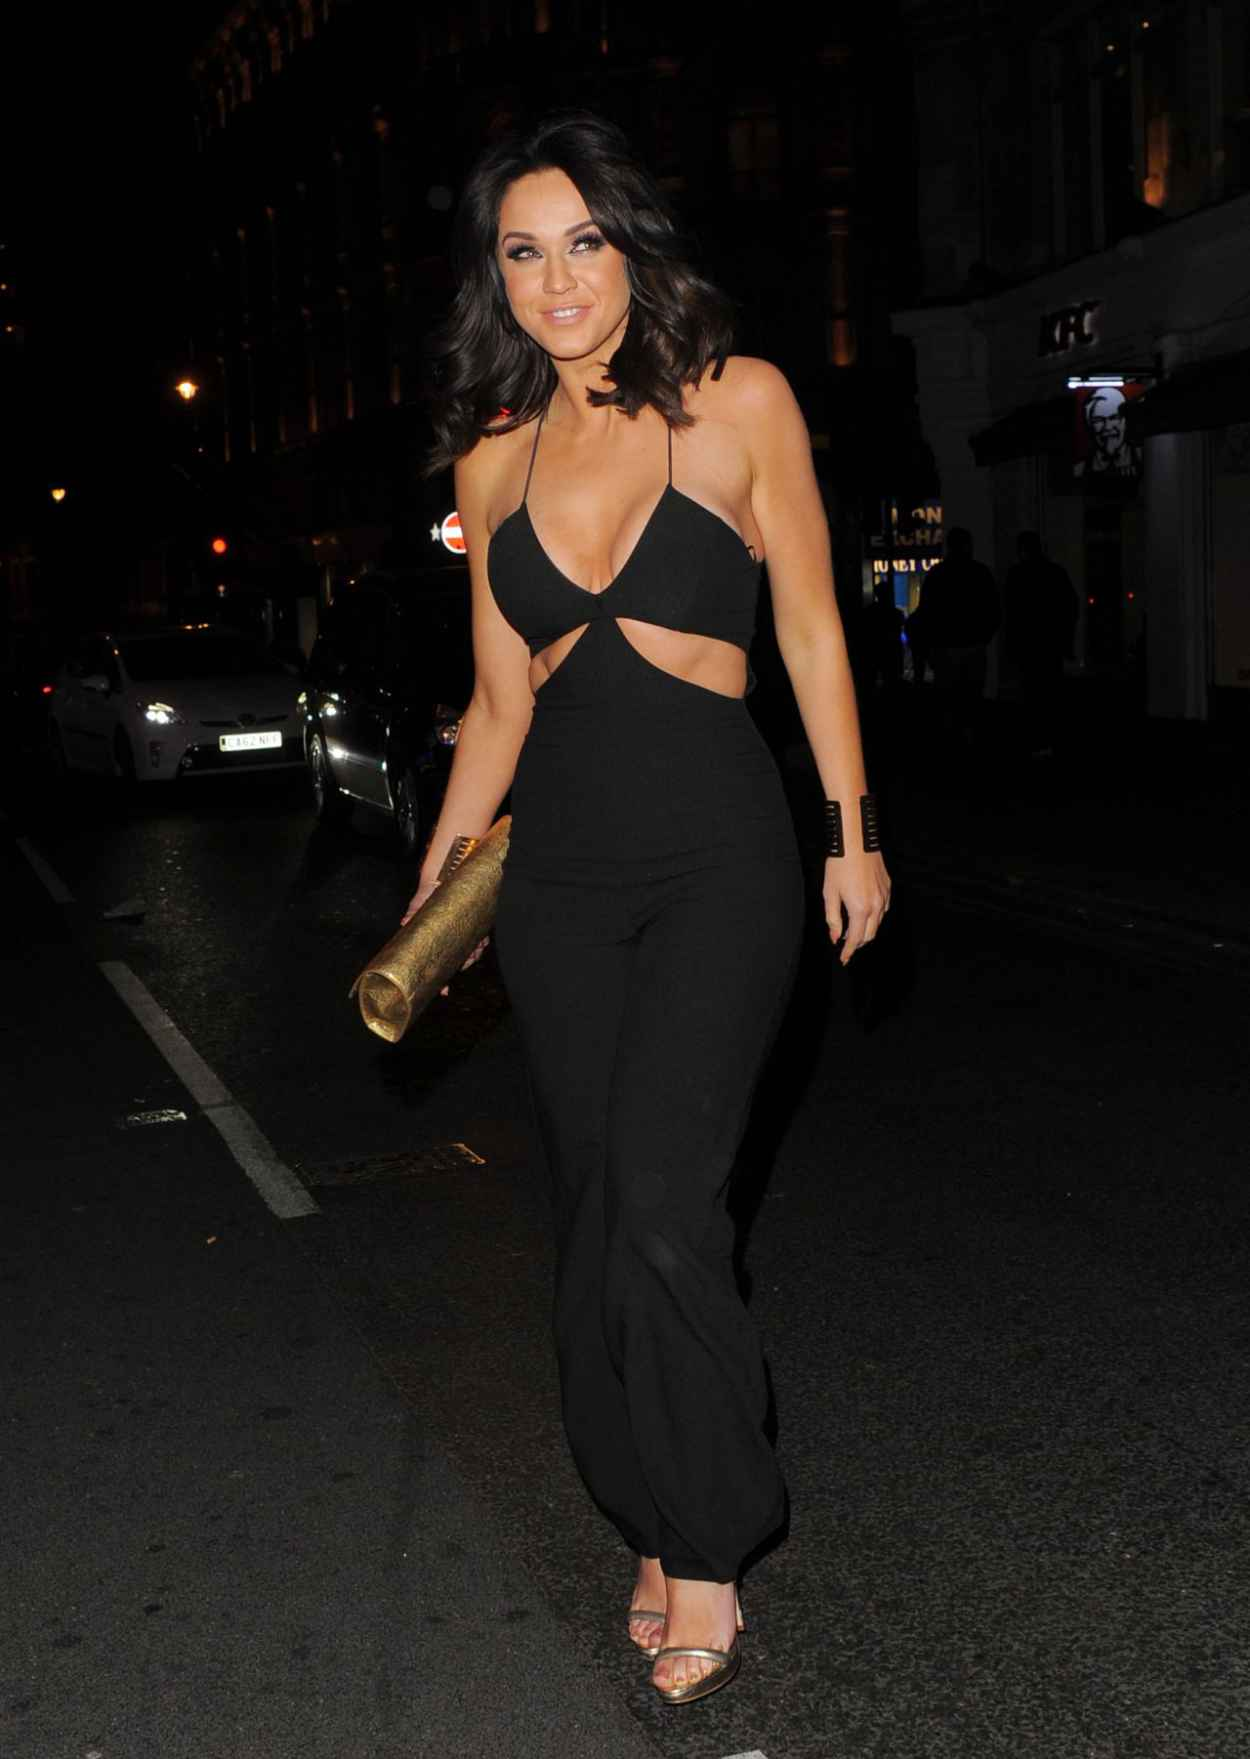 Vicky Pattison Night Out Style - London, April 2015-3